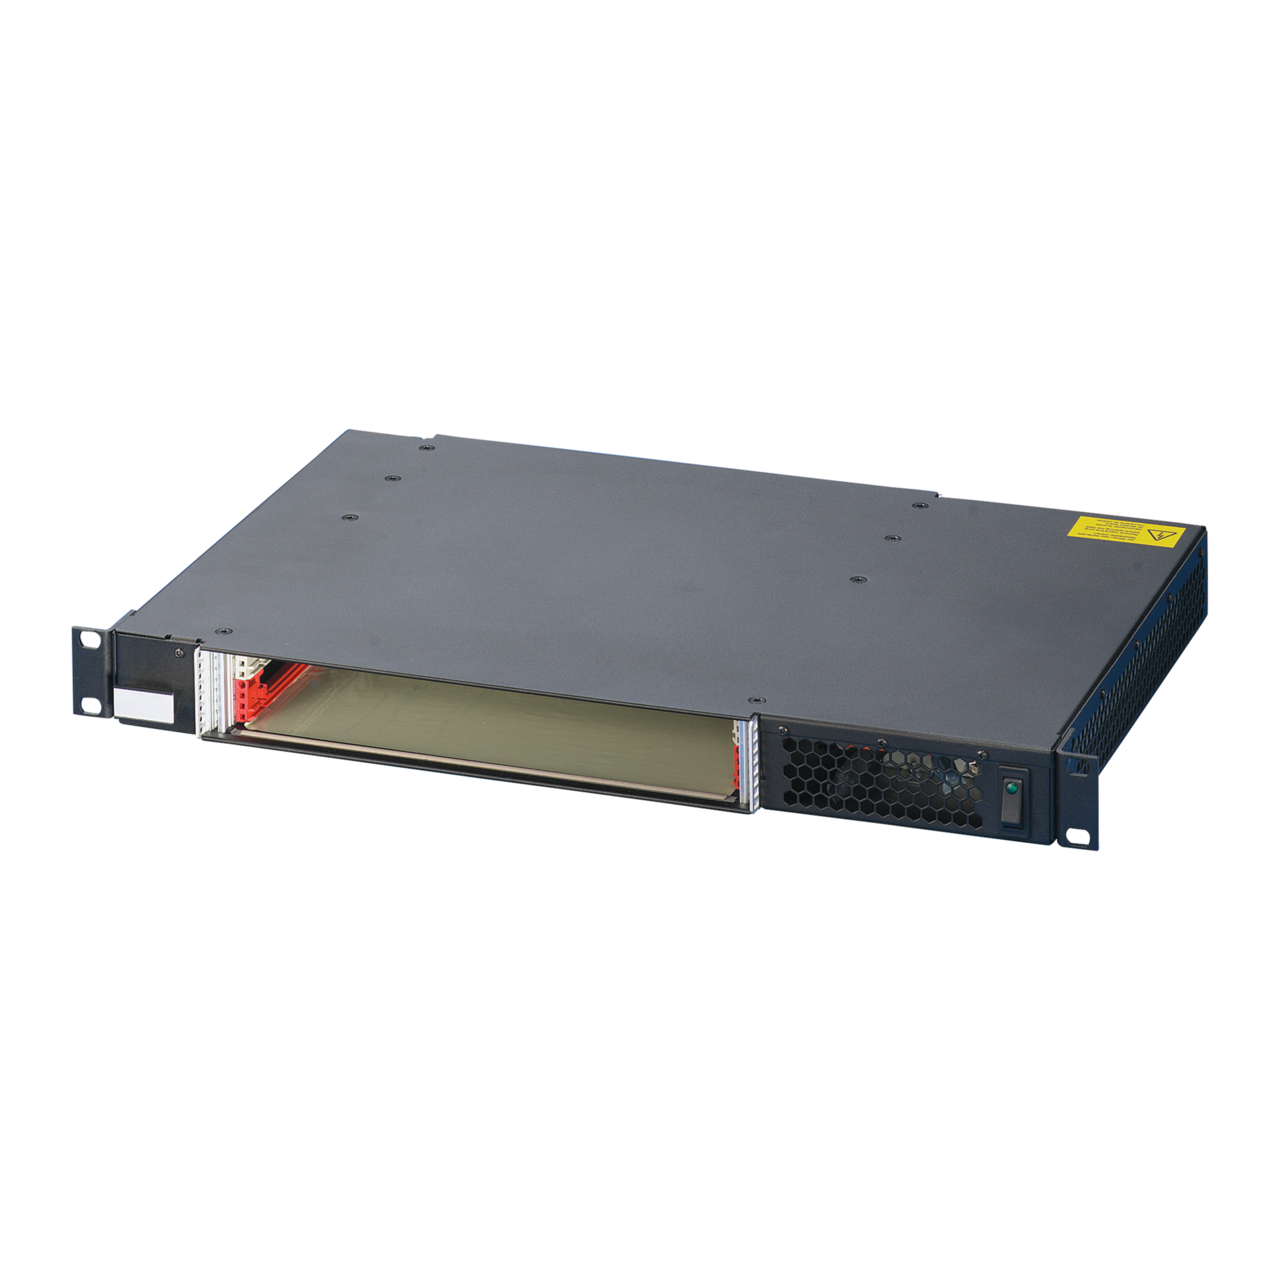 Image for CompactPCI System 1 U, 2 slot, with rear I/O, with ATX power supply from Schroff - North America